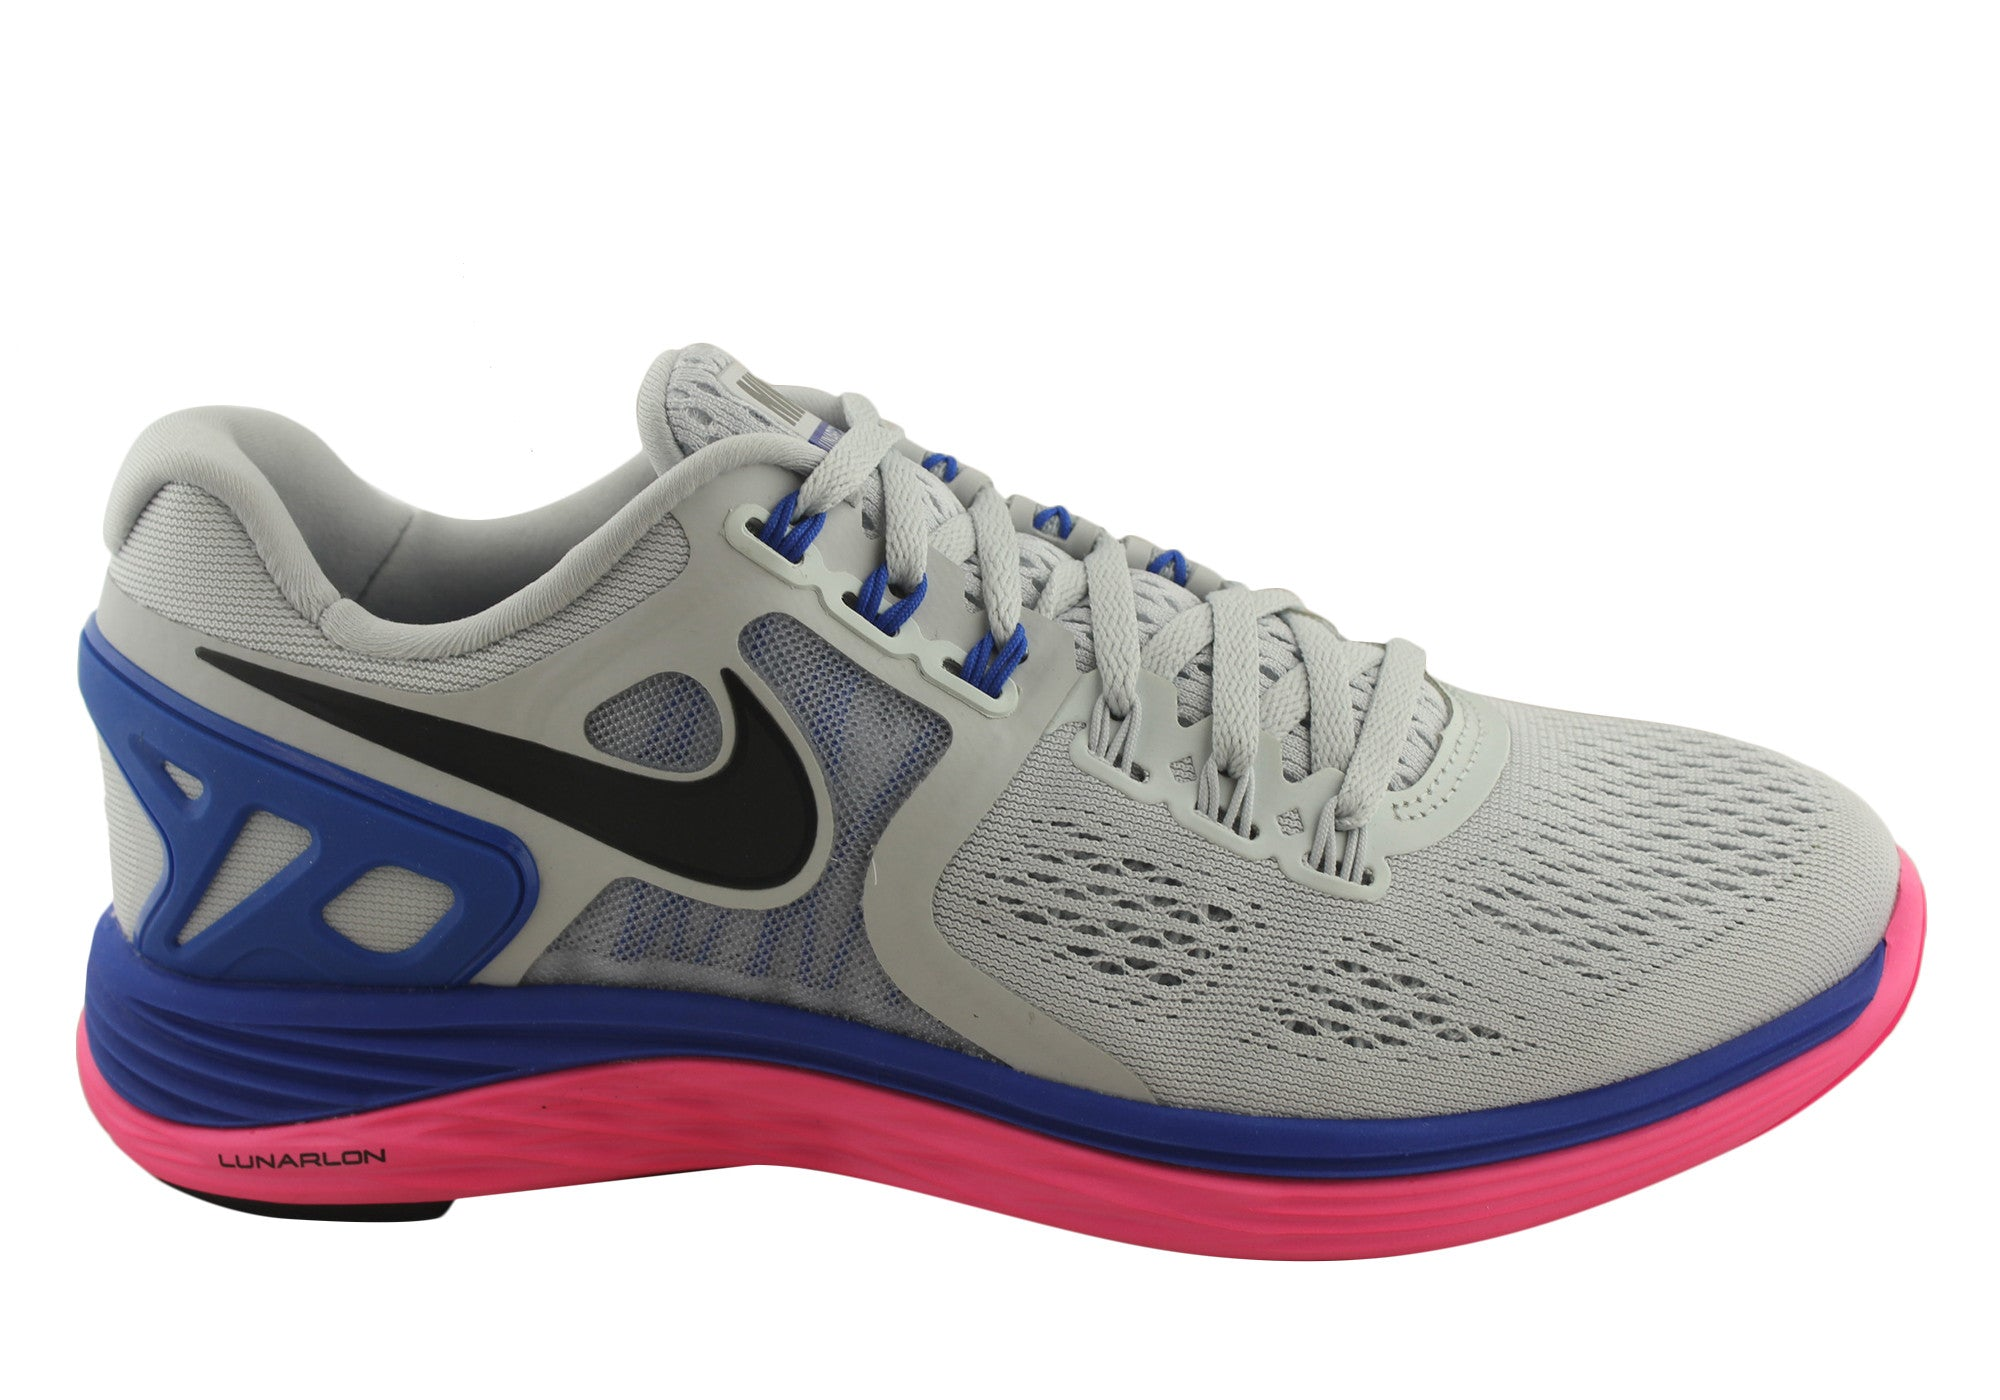 new style 1cc12 a4ee2 Nike Lunareclipse 4 Womens Comfortable Running Shoes